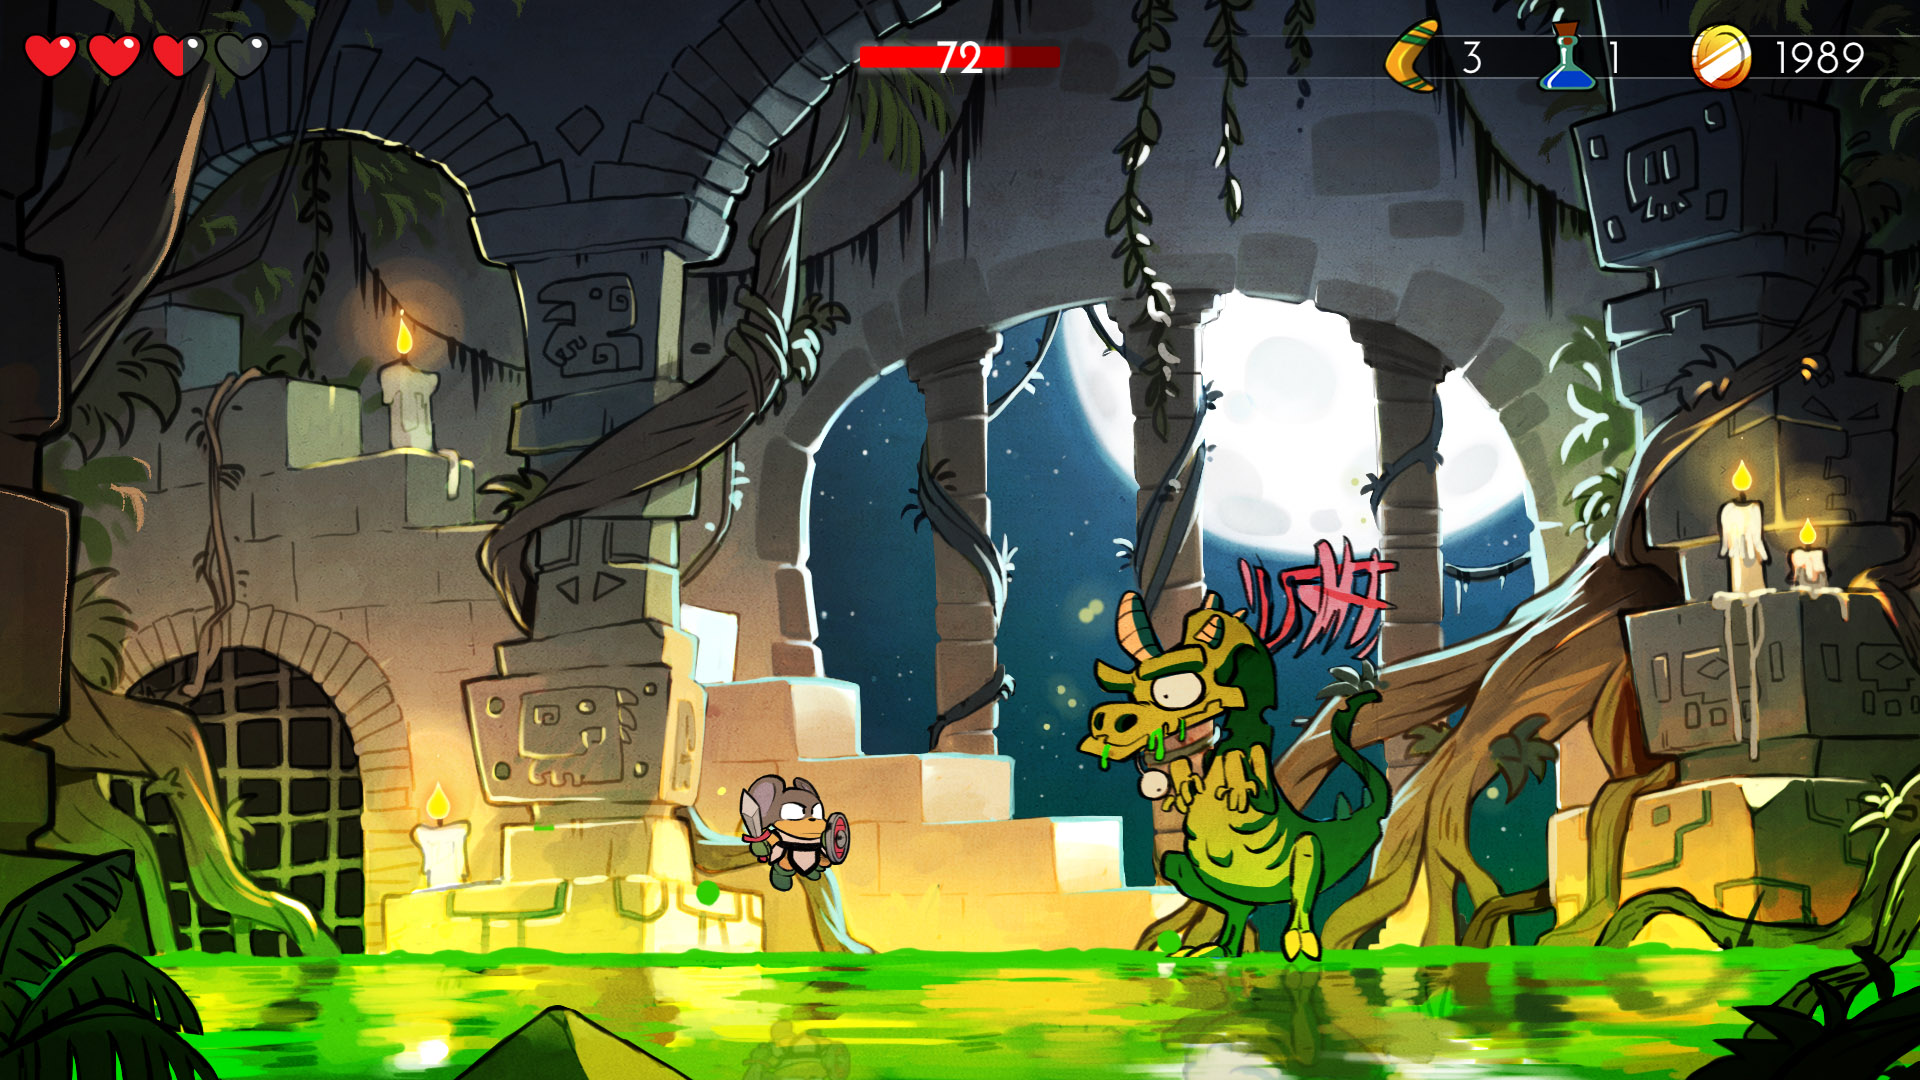 Totally Powerful New 2D Platformer Game Legbreaker Will Break Your Legs If You Jump Too High